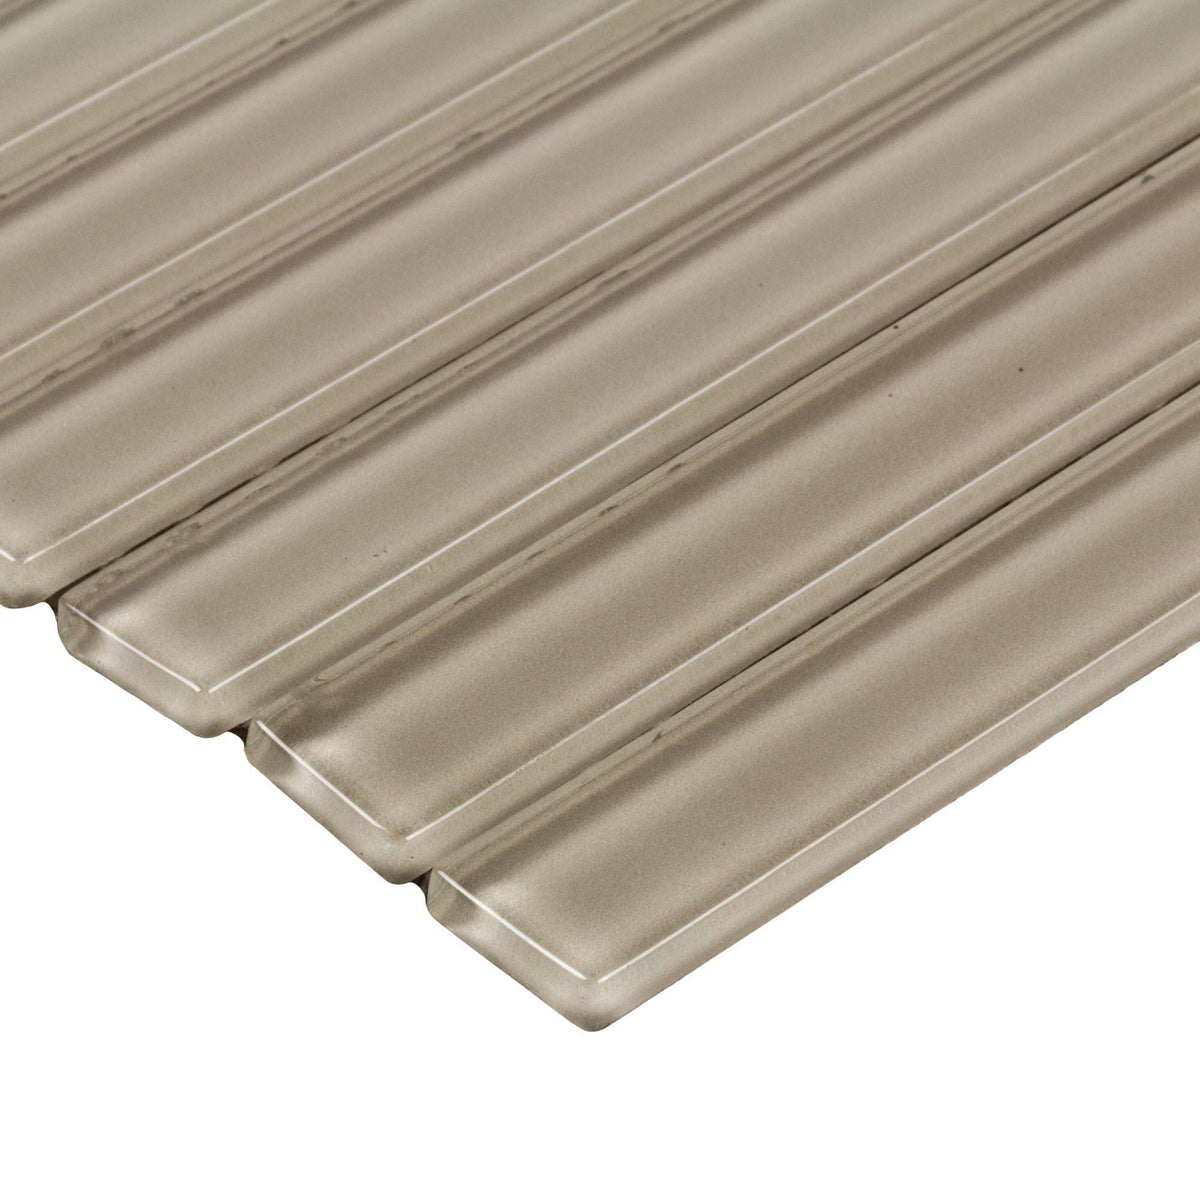 Mto0433 Peel And Stick Pencil Liner Molding Beige Glass Mosaic Tile